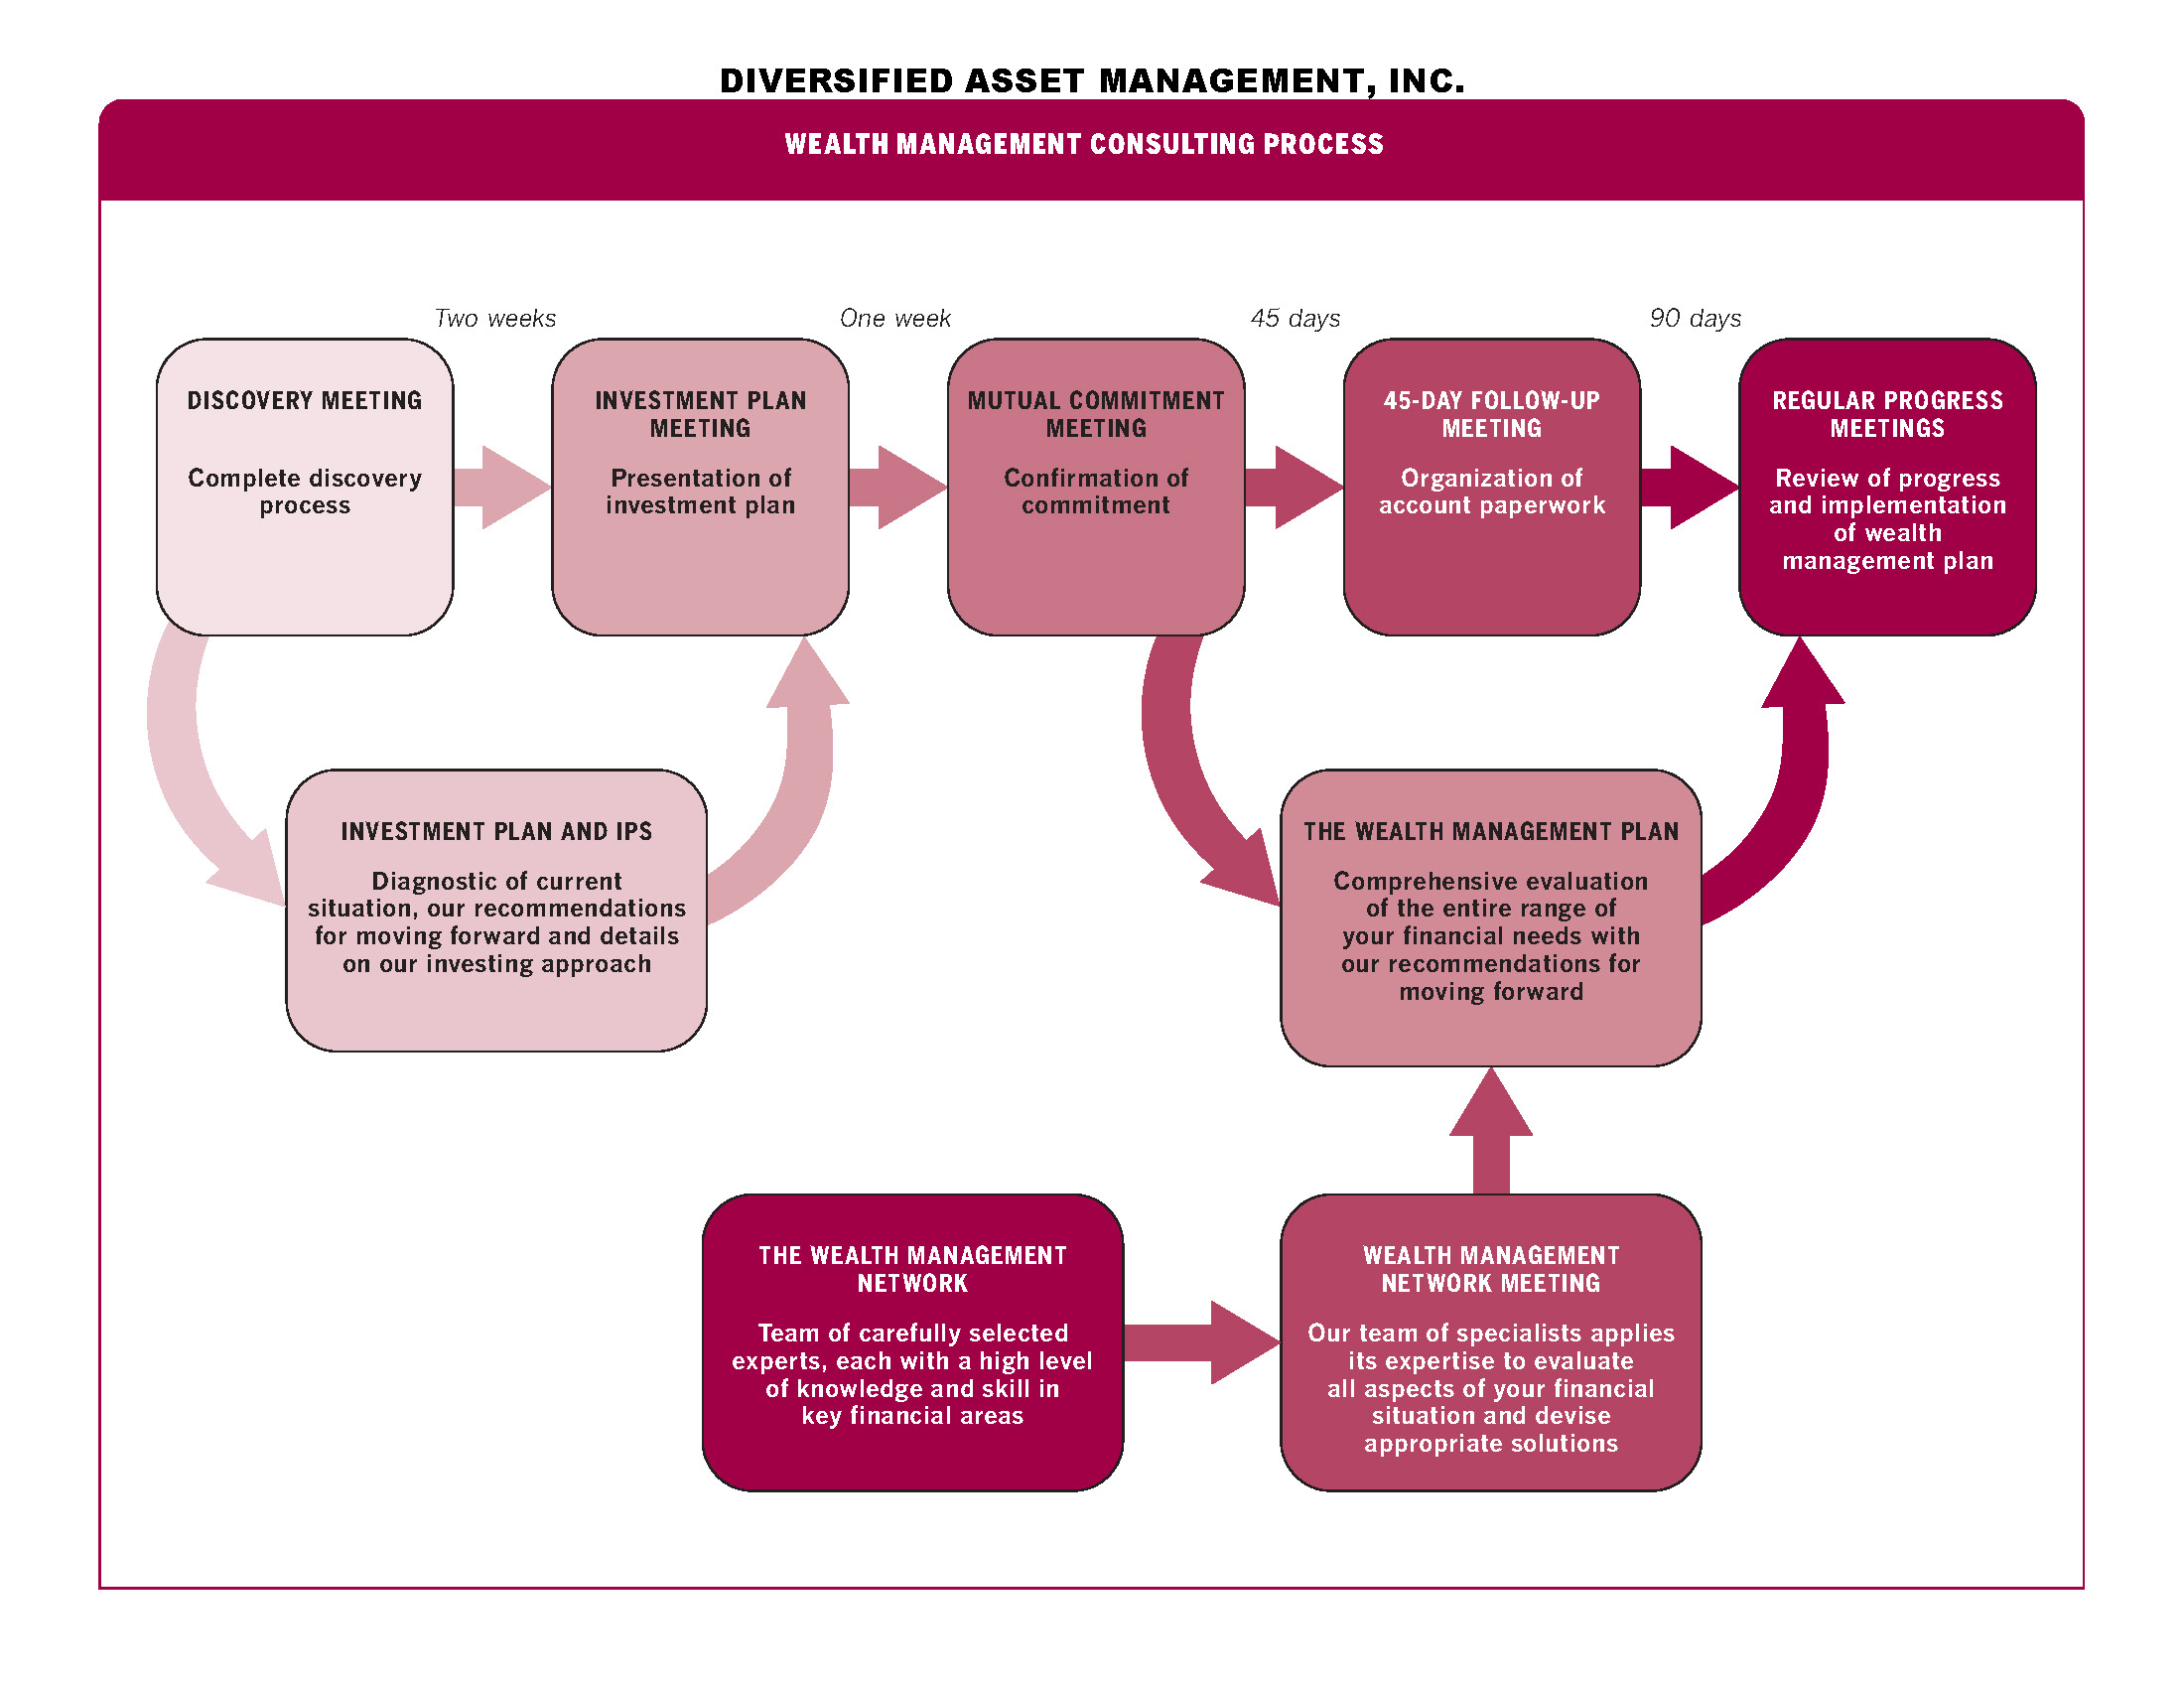 Wealth Management Consulting Process-DAMI new version.jpg